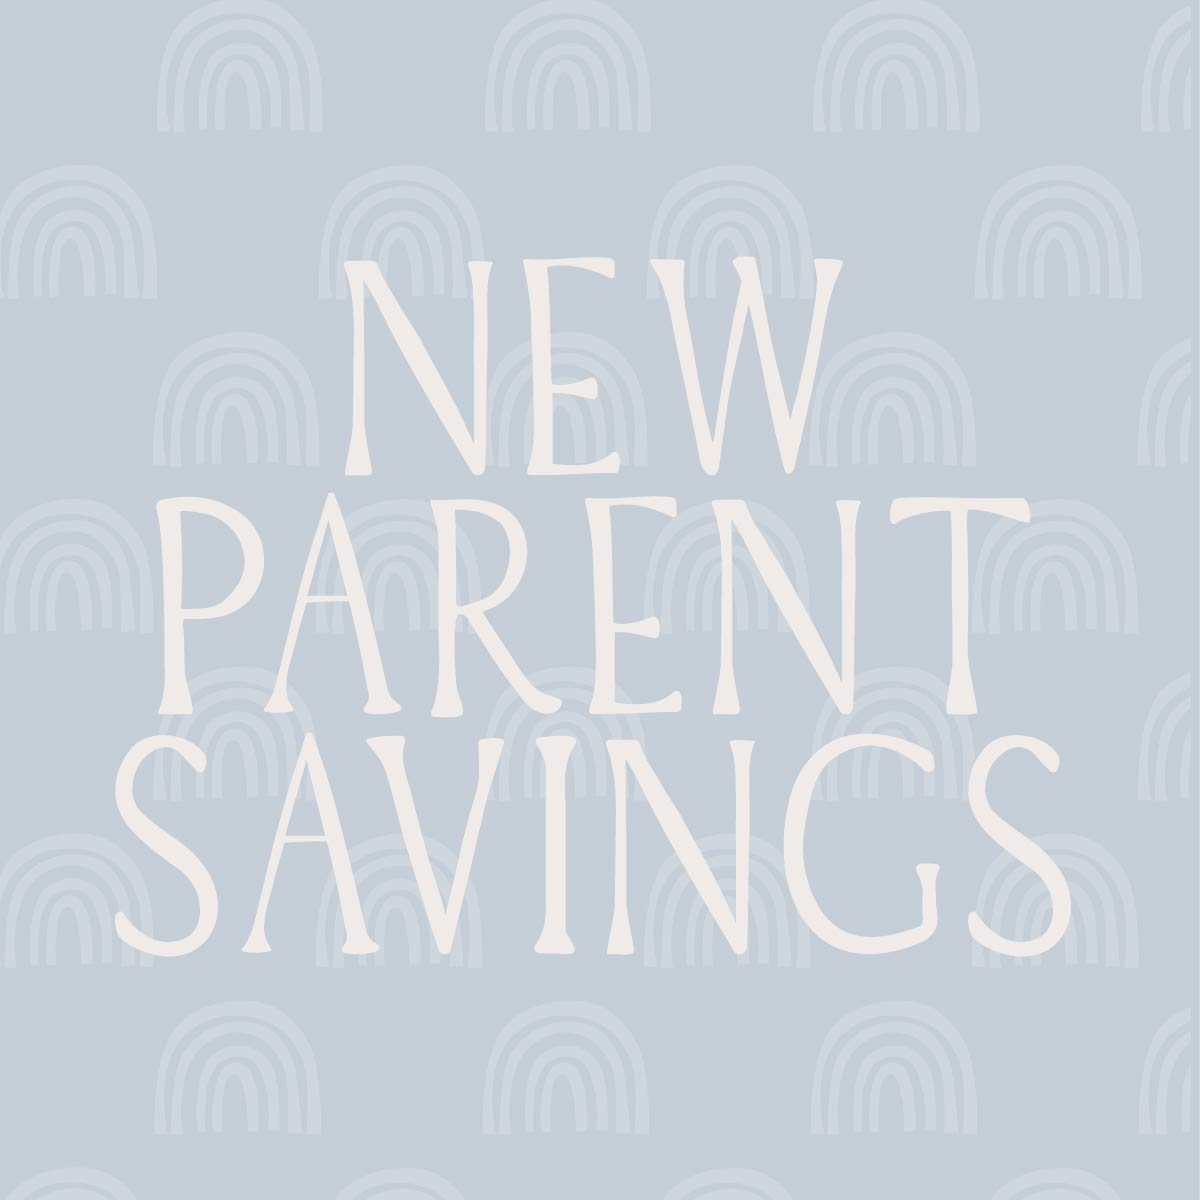 New Parents Savings